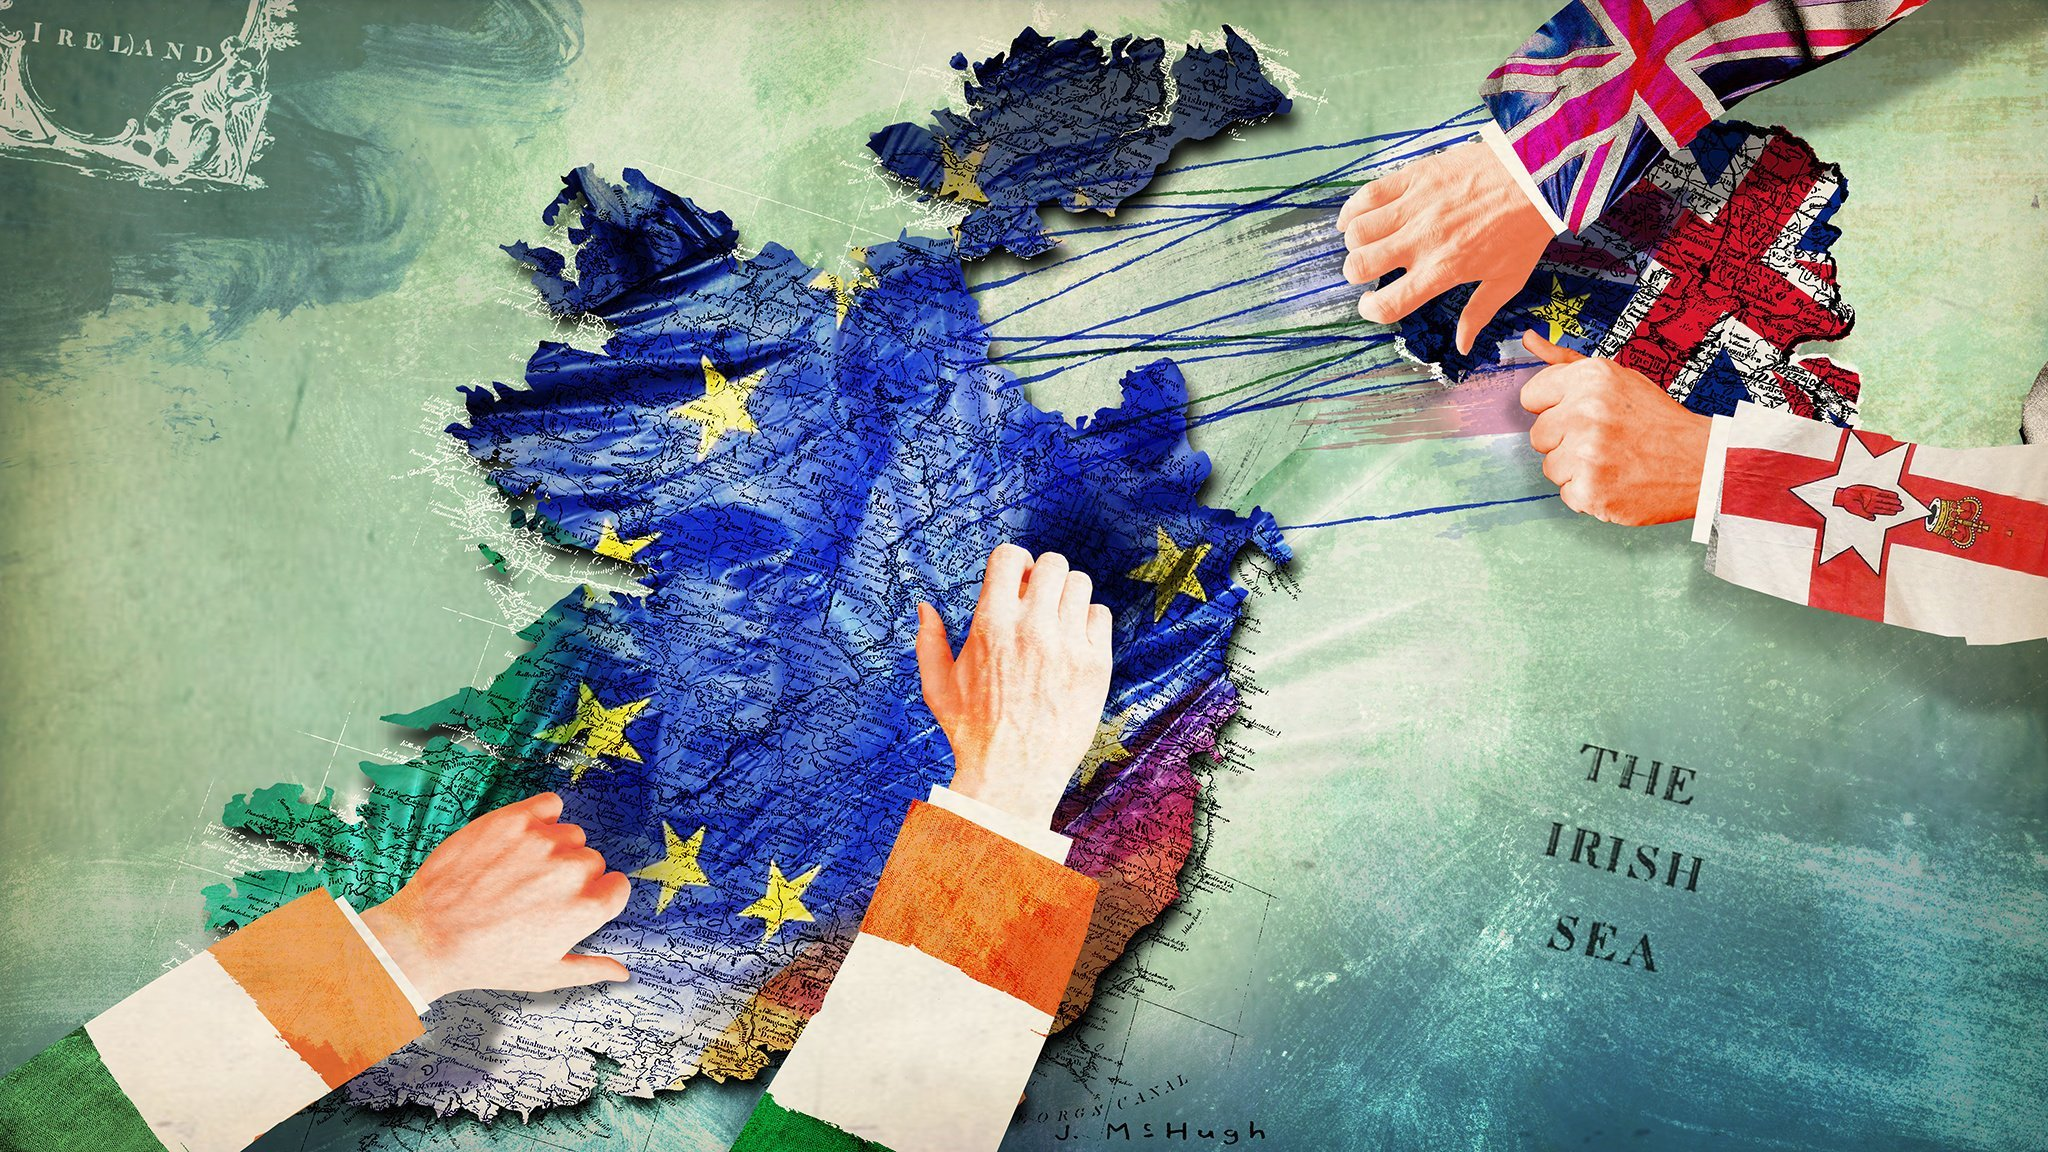 As Brexit approaches, the gulf between Britain and Ireland